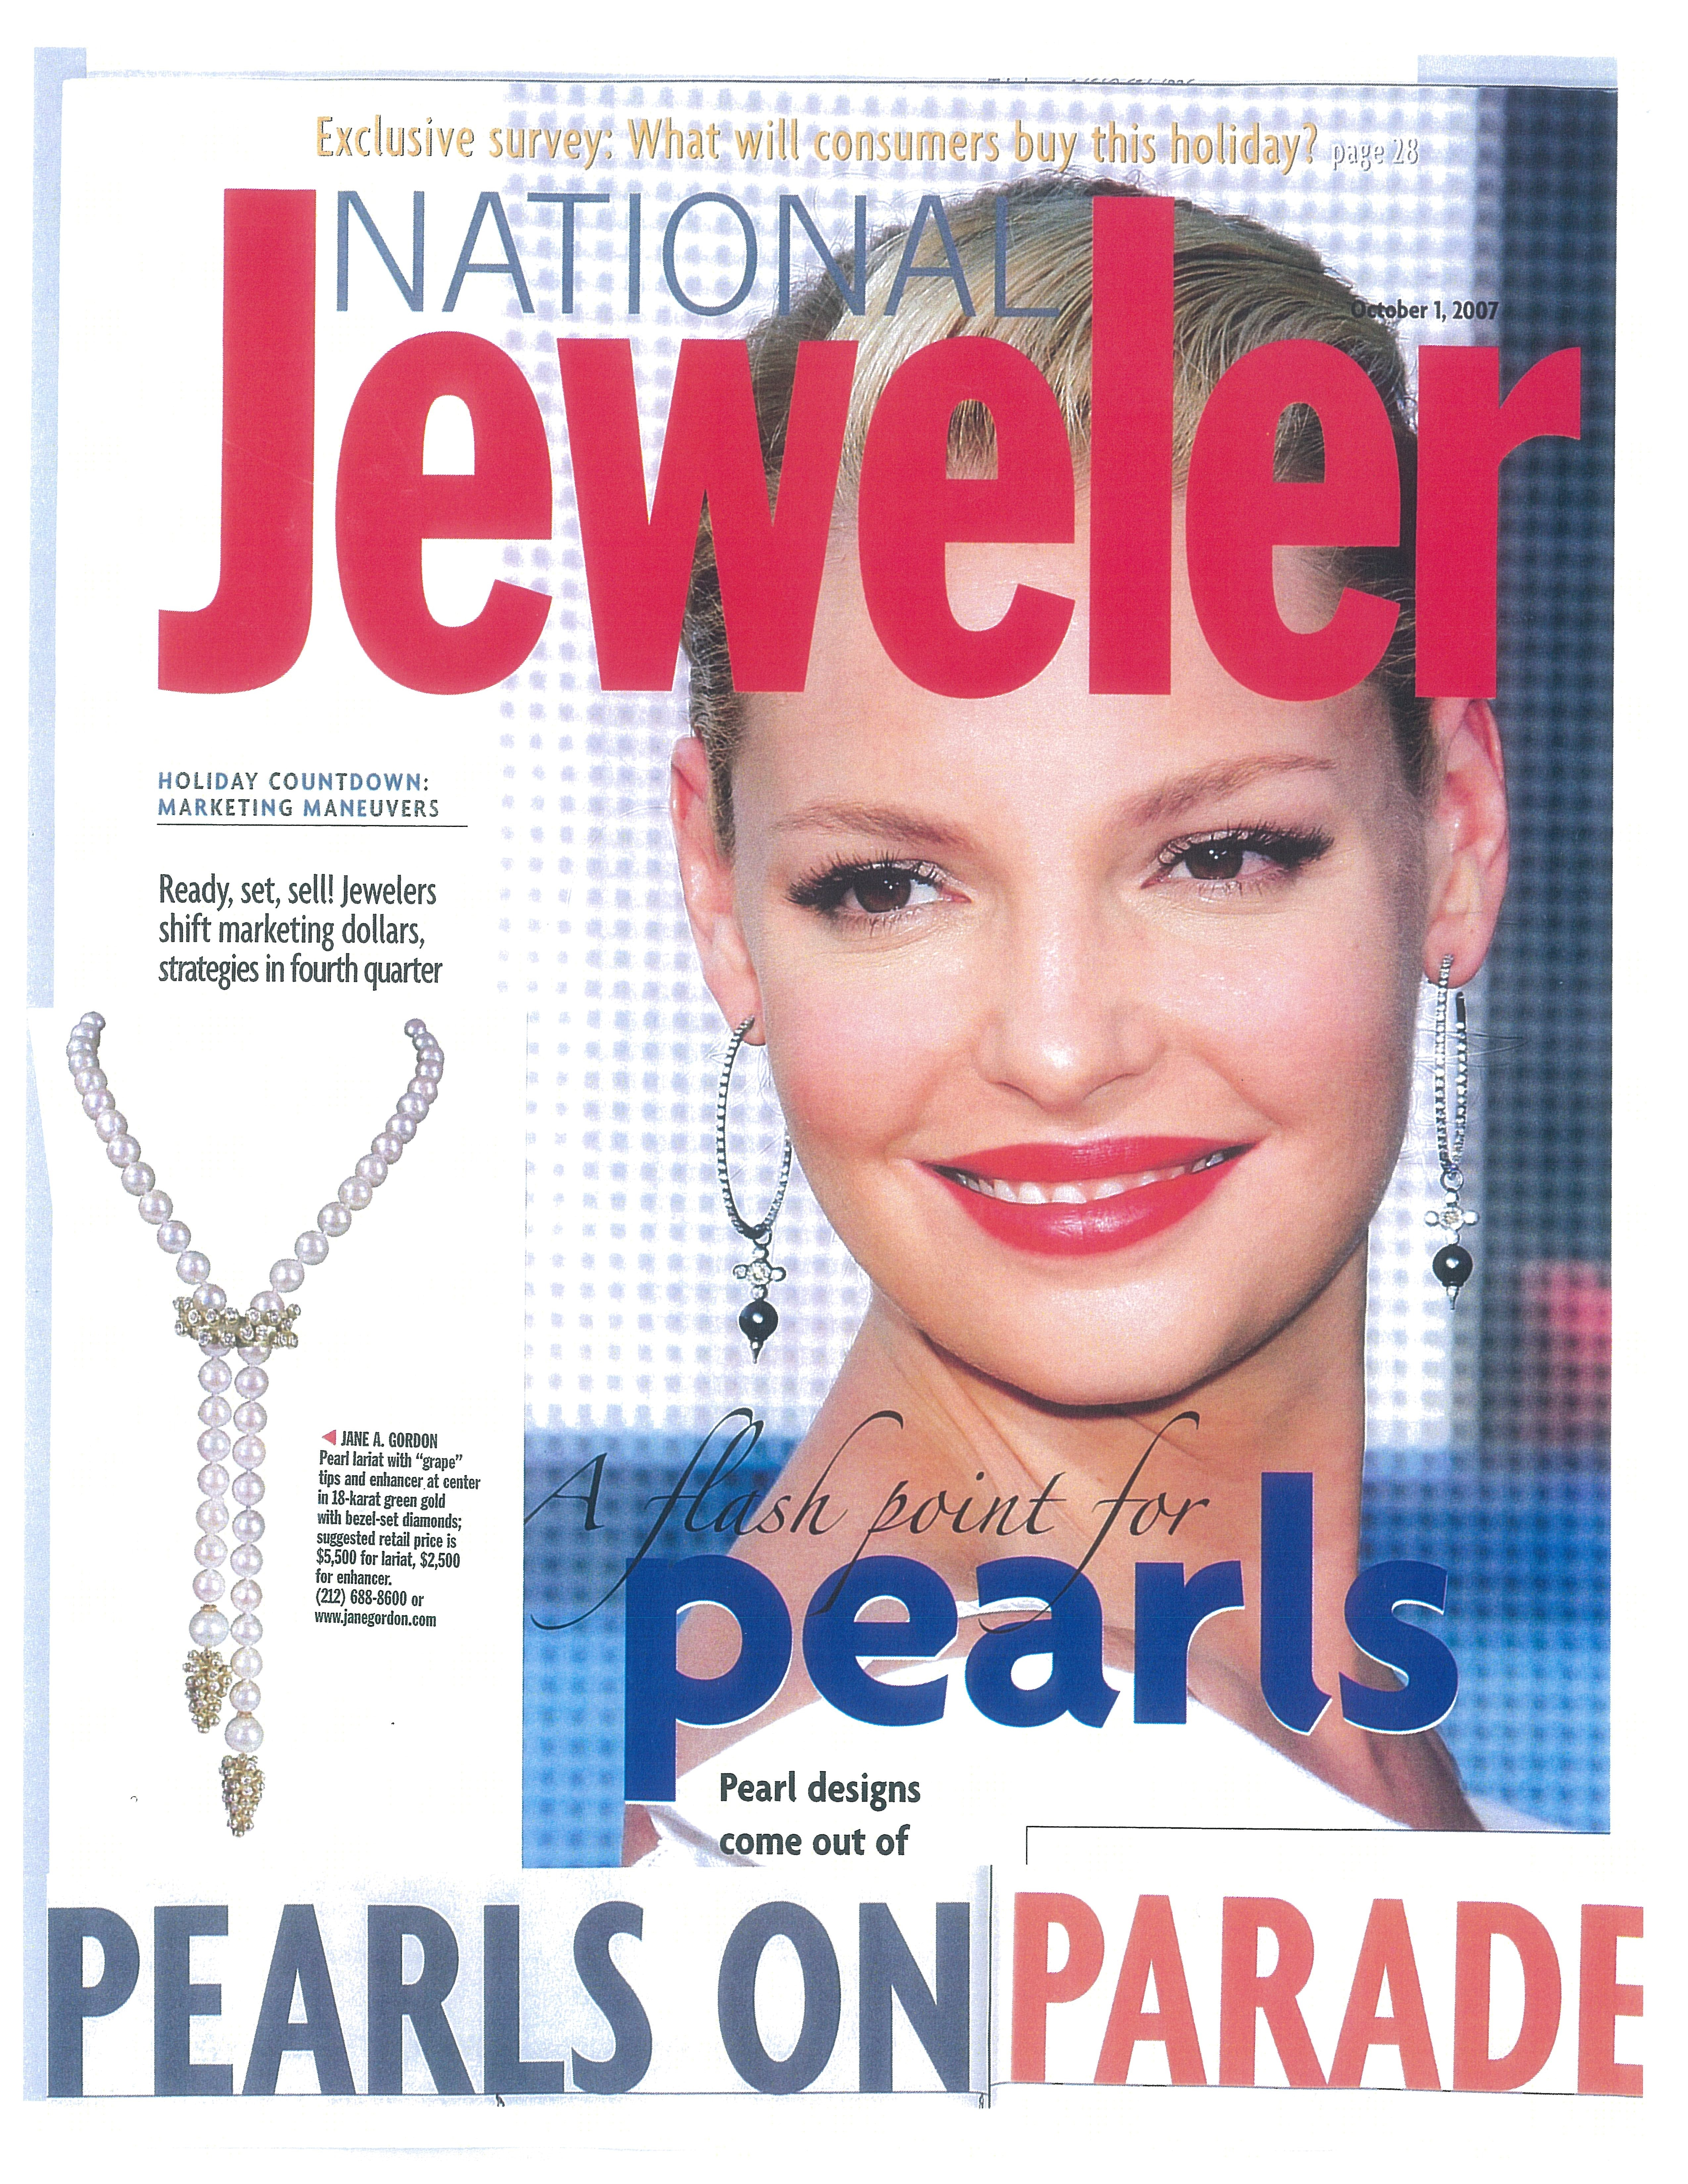 national-jeweler-pearls-on-parade-pearls-and-interchangeable-clip-pearl-enhancers-jane-a-gordon-jewelry-janegordon-com.jpg